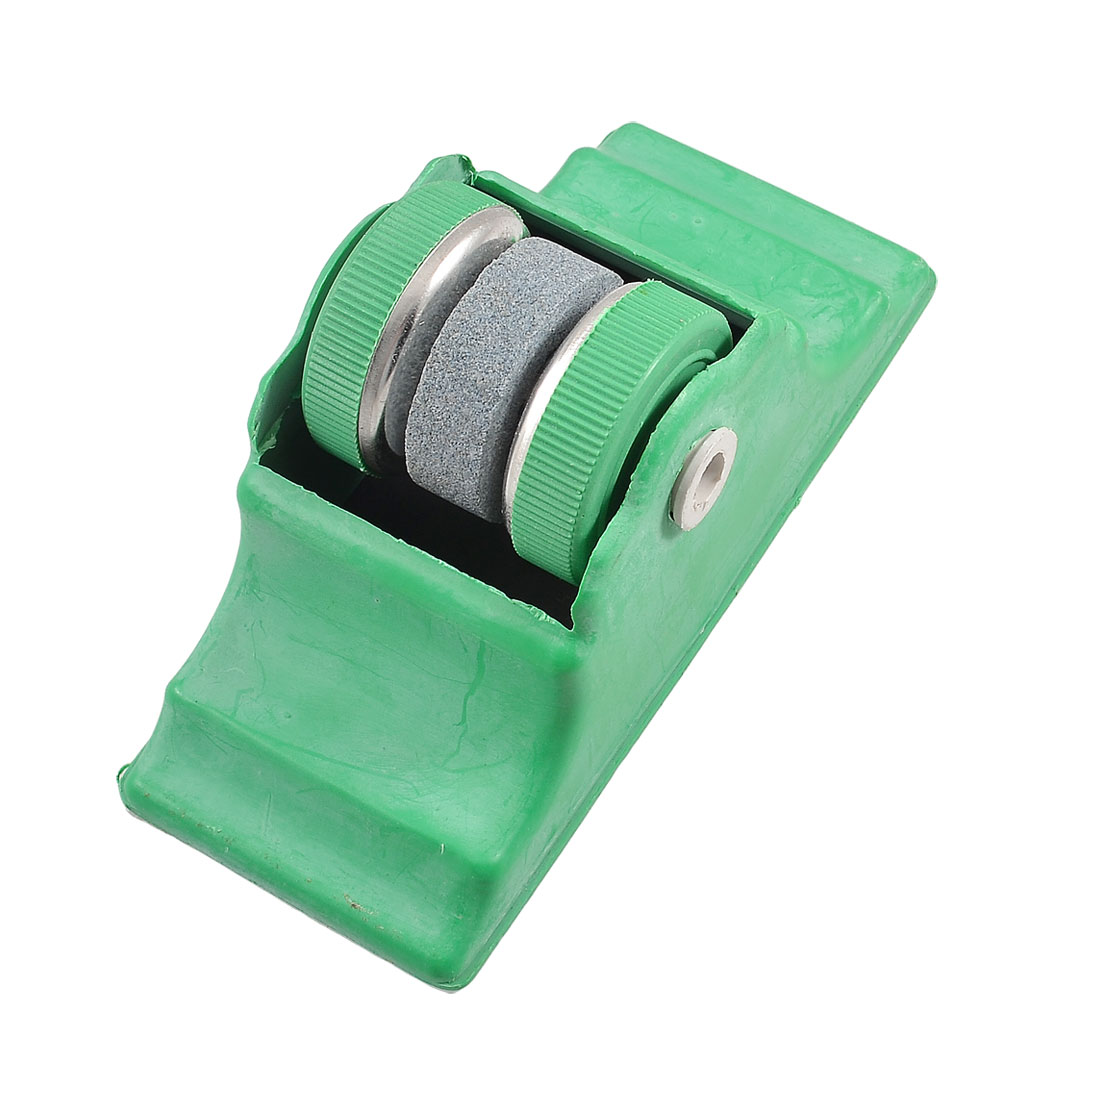 Home Kitchen Green Round Cutter Grit Lapped Sharpening Whetstone